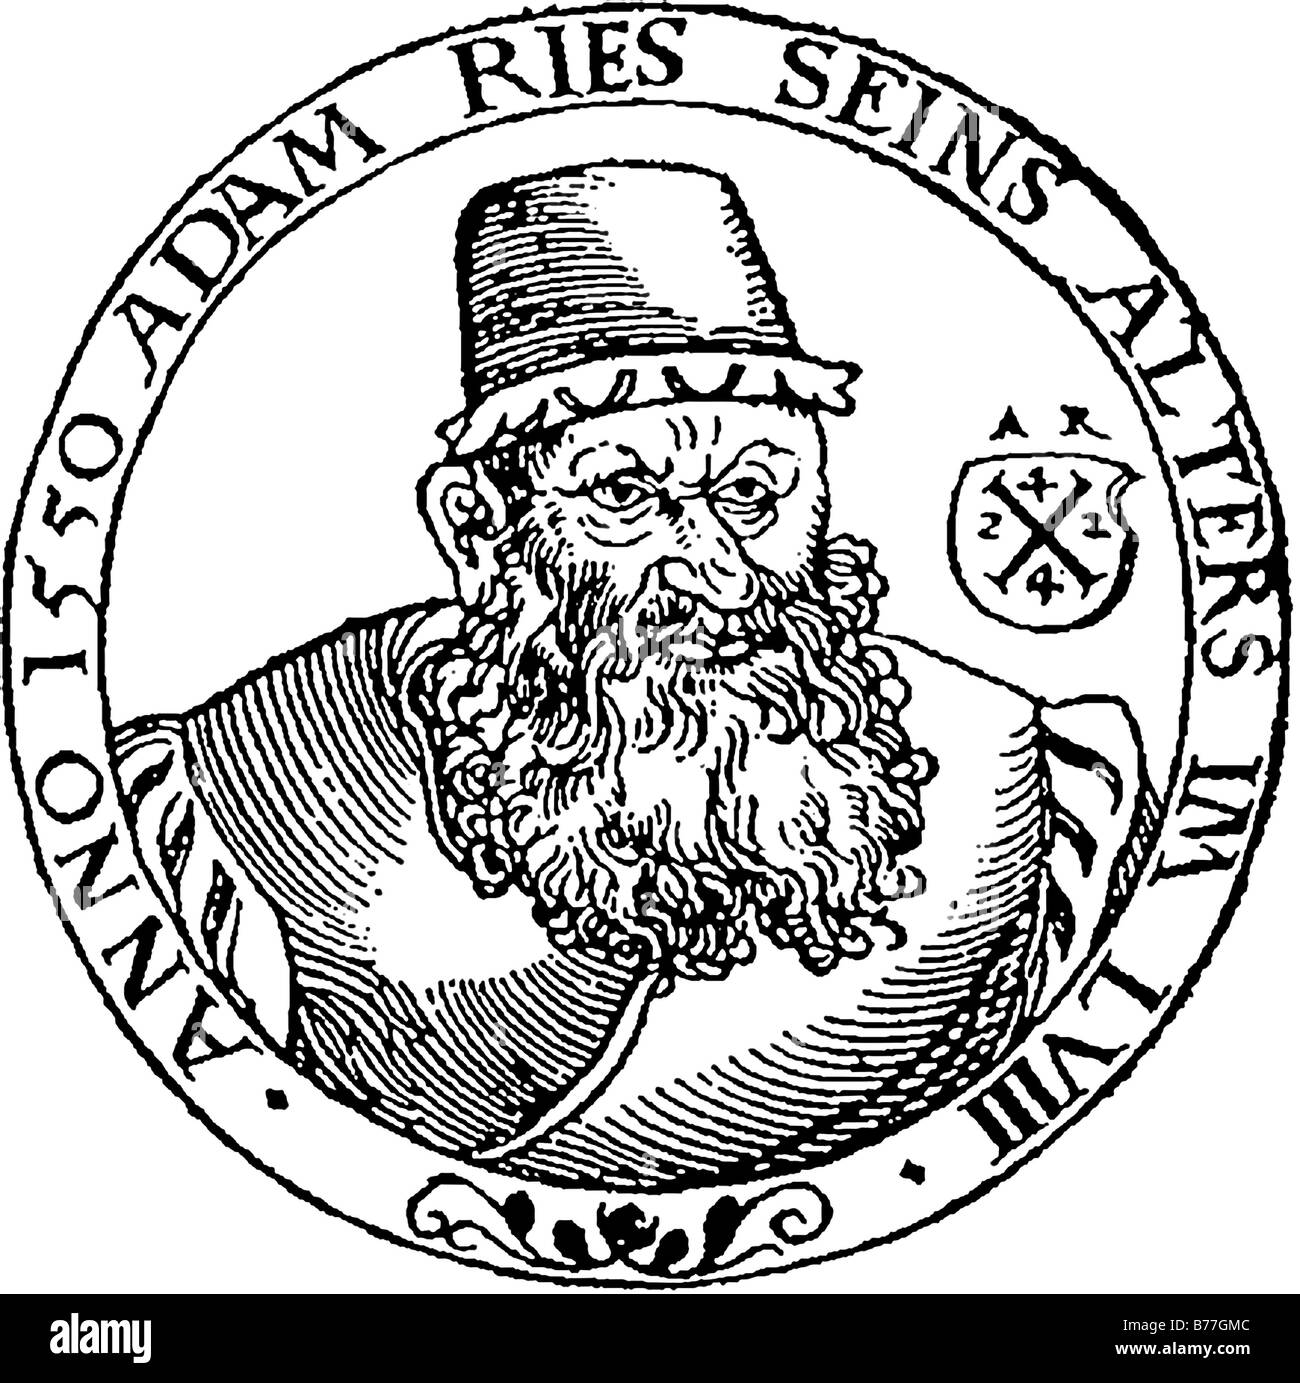 Adam Riese, Ries, 58 years old, wood carving from 1550, portrait - Stock Image